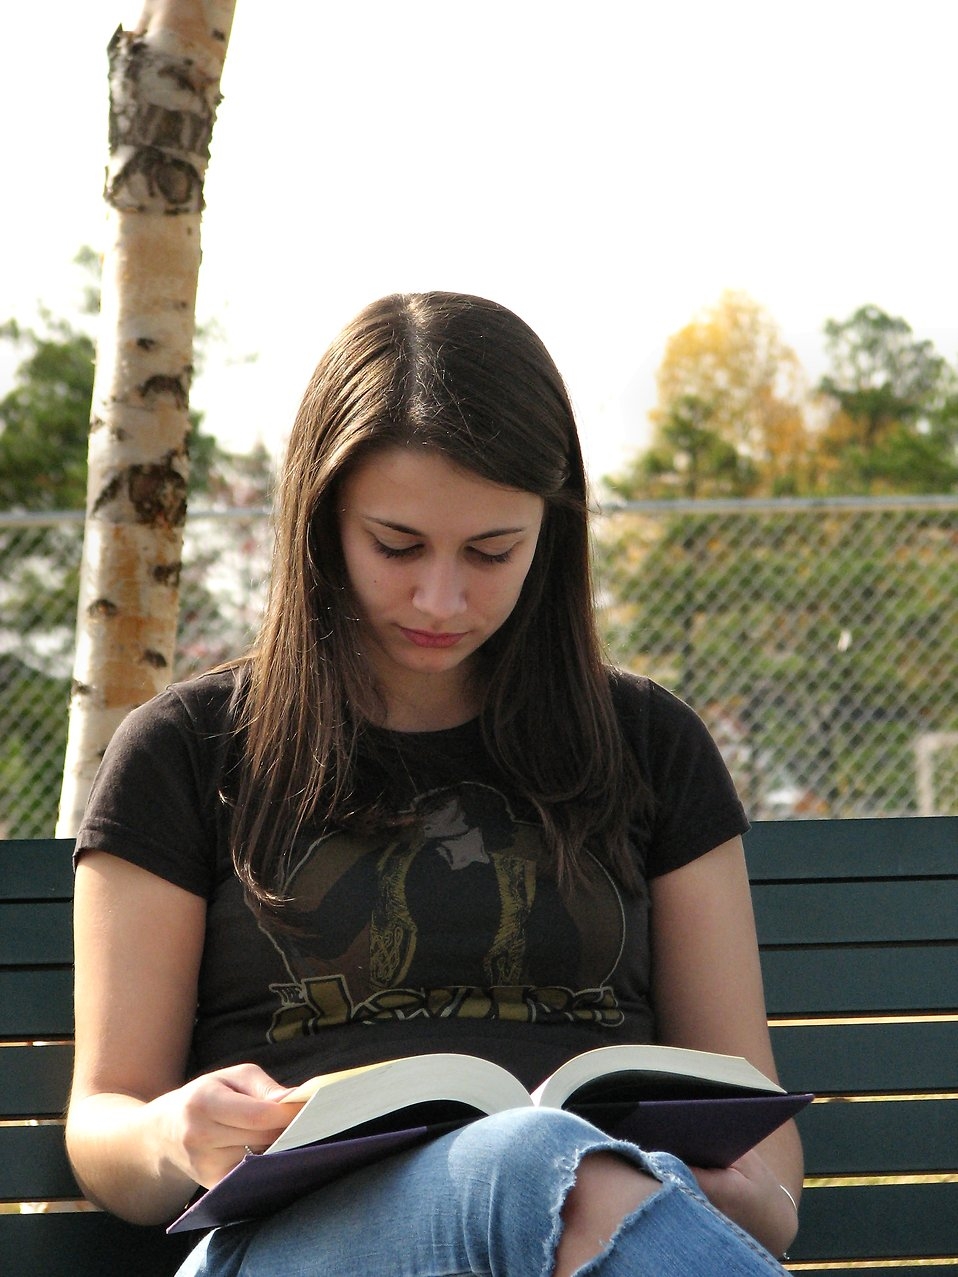 Closeup of teenage girl reading a book : Free Stock Photo